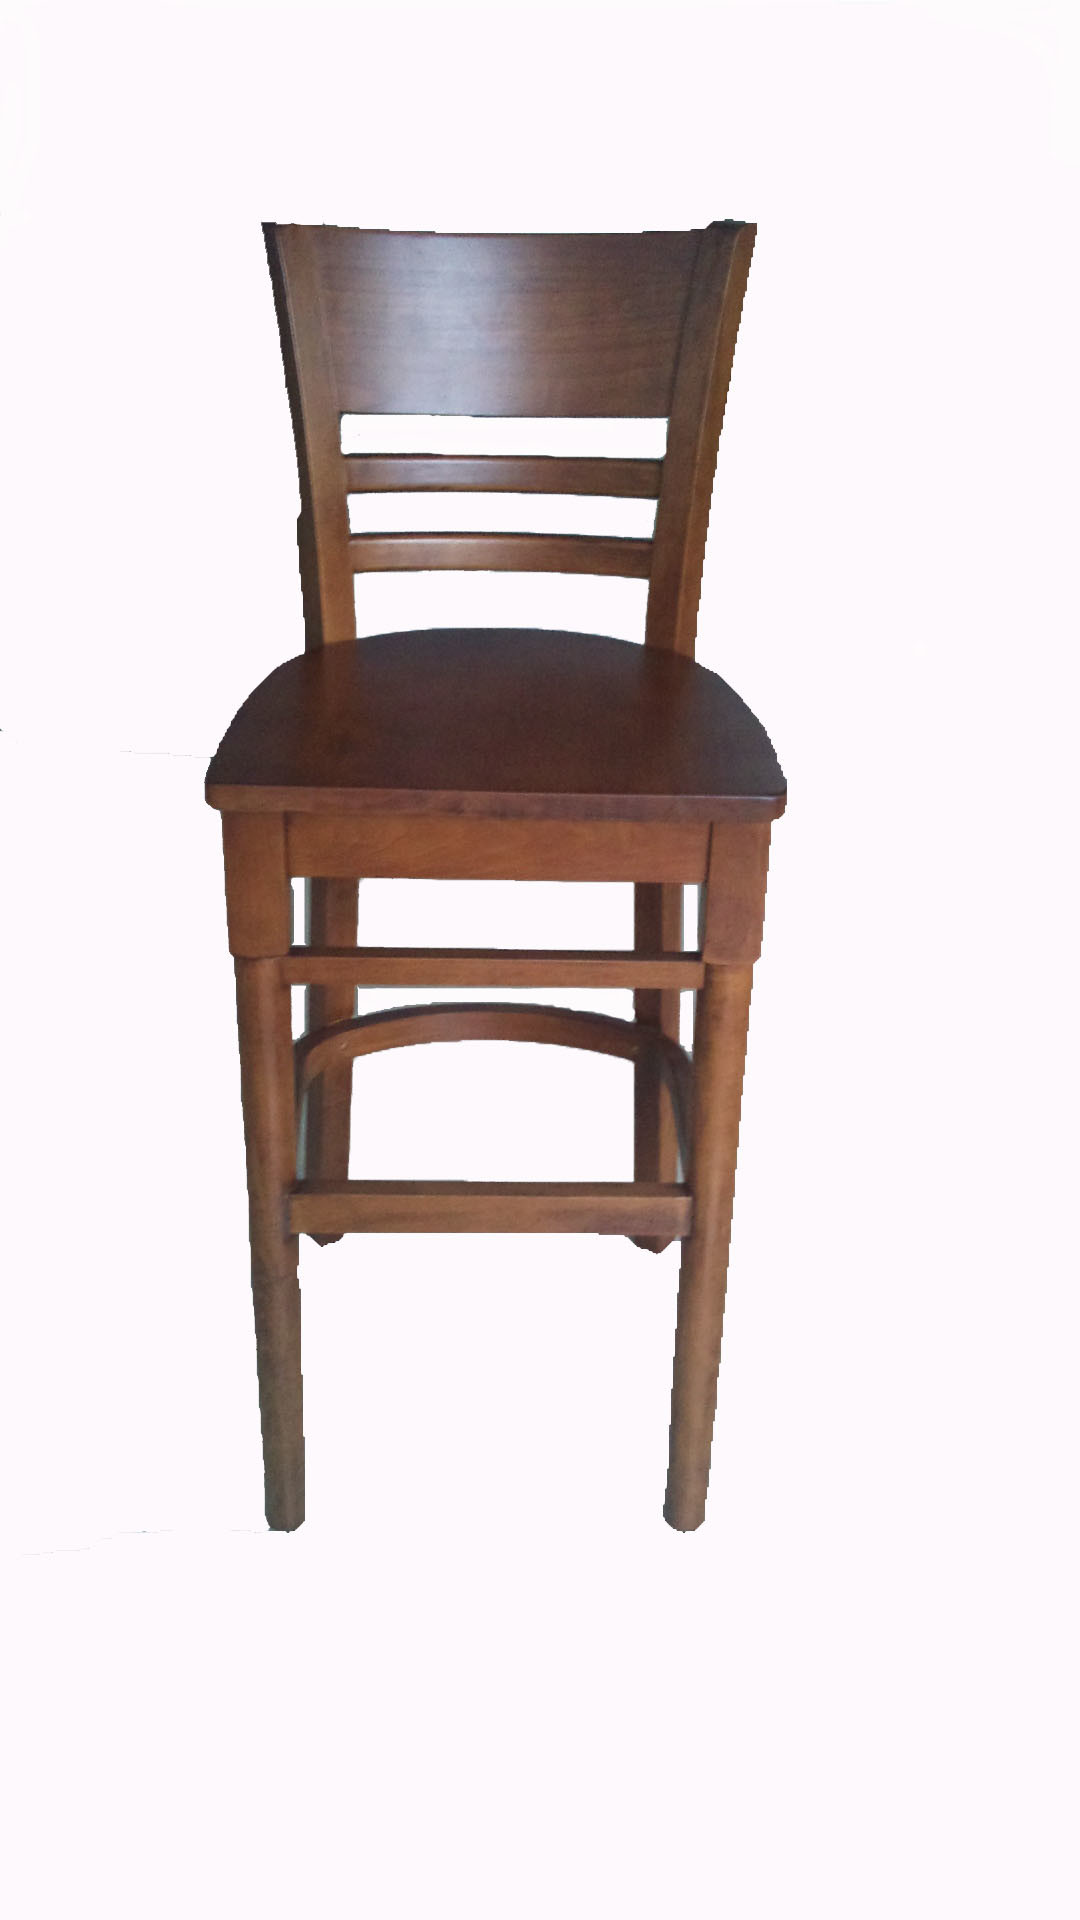 wooden pub chairs china wooden bar chair a02 china bar chair wood chair stacking. Black Bedroom Furniture Sets. Home Design Ideas